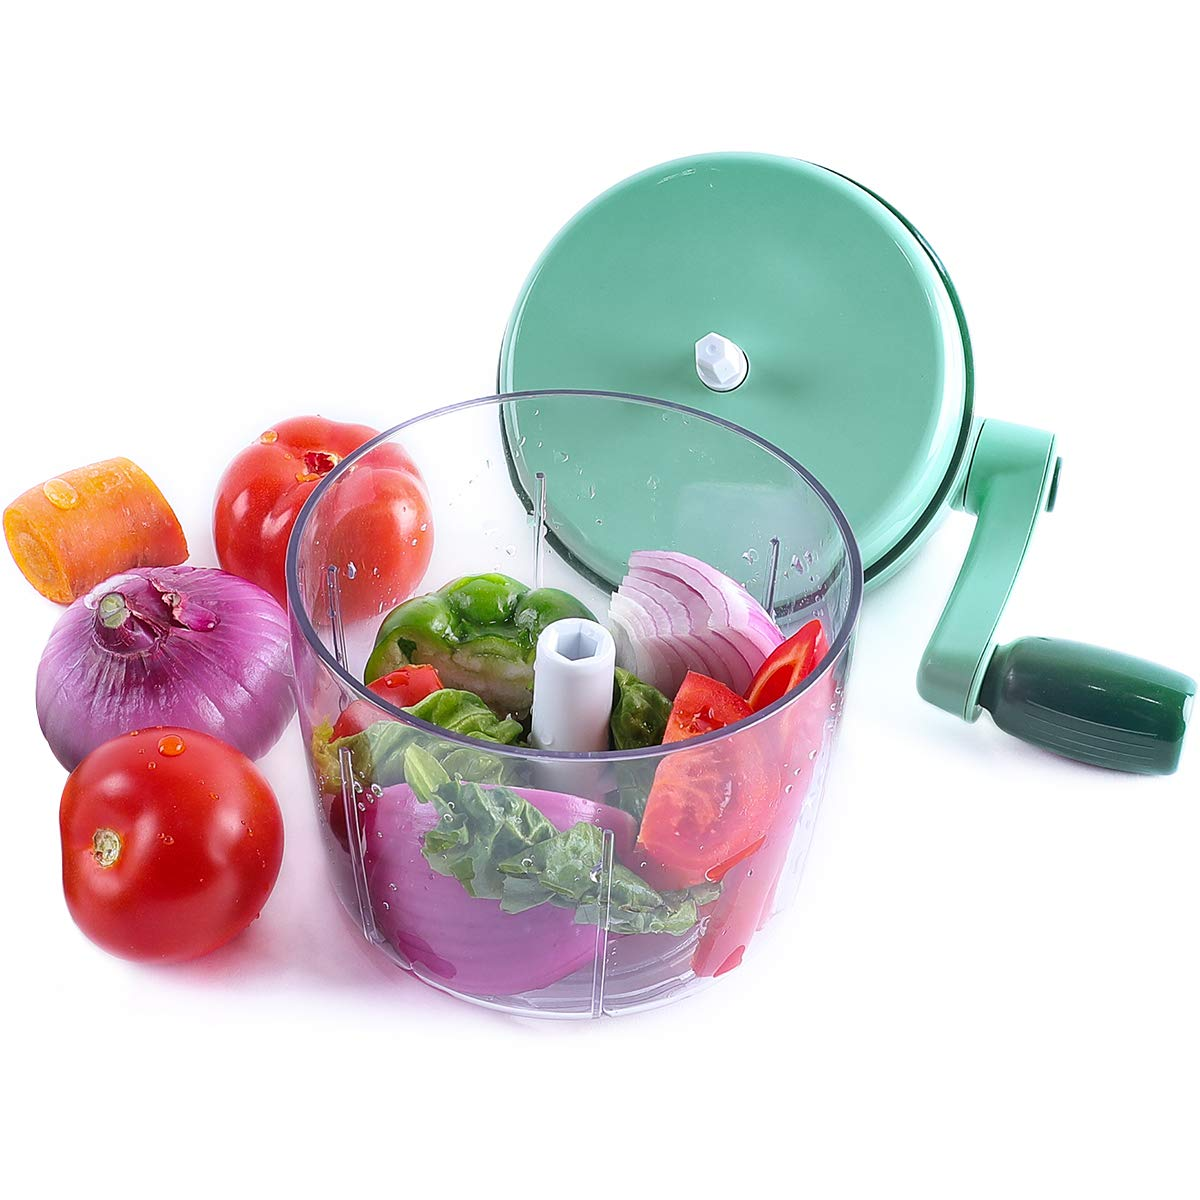 Two blade rotation speeds Handle Food Chopper Hand Powered Meat Veggie Fruit Salad Maker (Green)